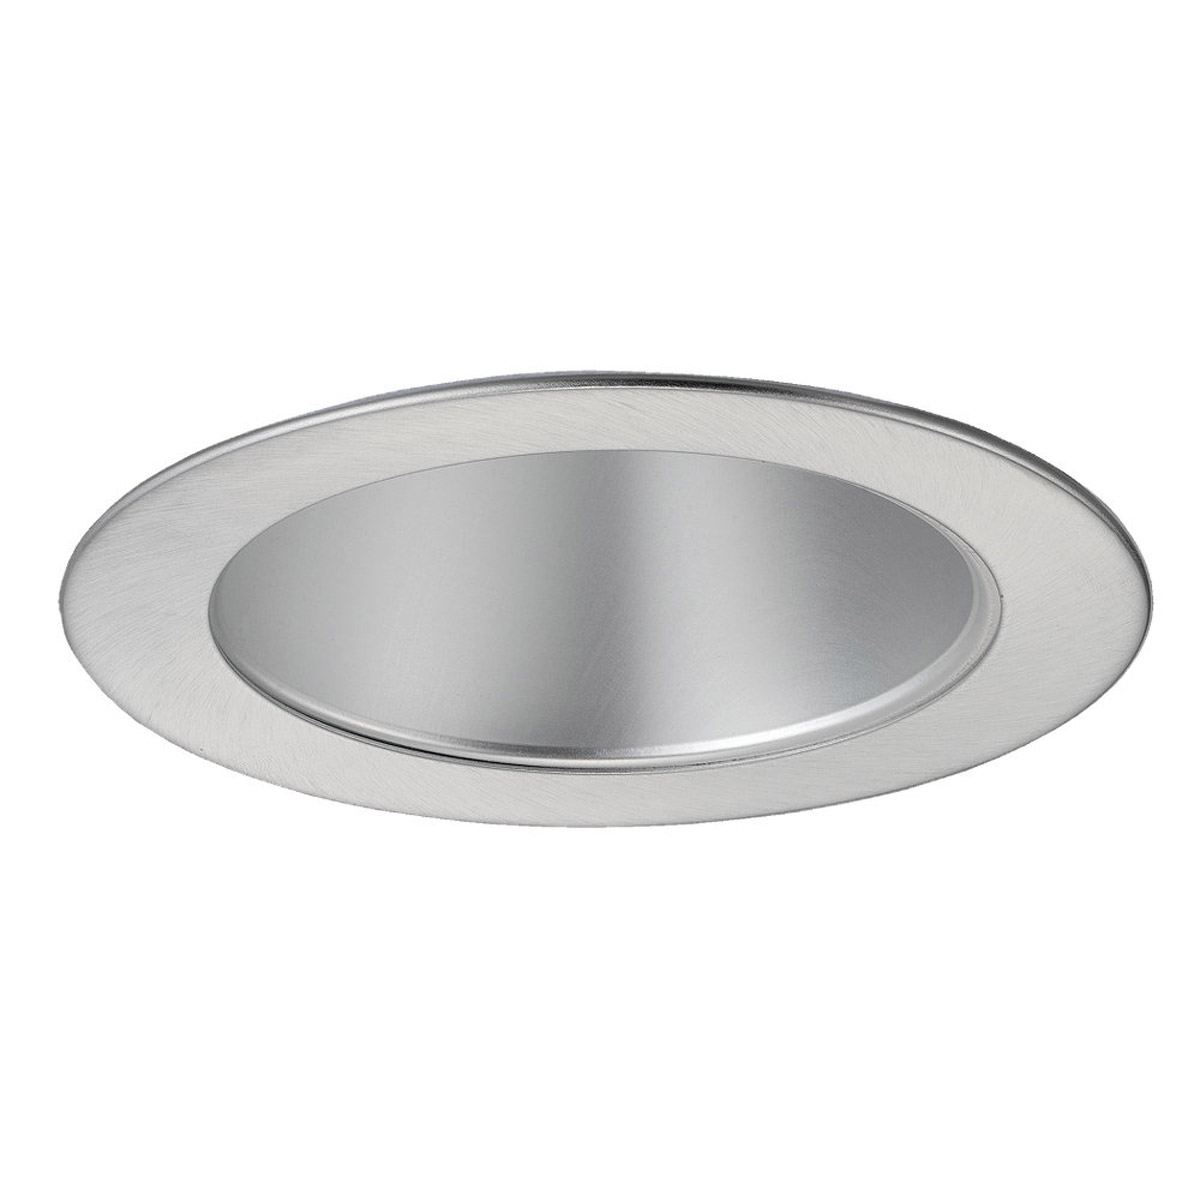 Sea Gull Lighting Signature Recessed Trim Only in Satin Nickel 1162AT-849 photo